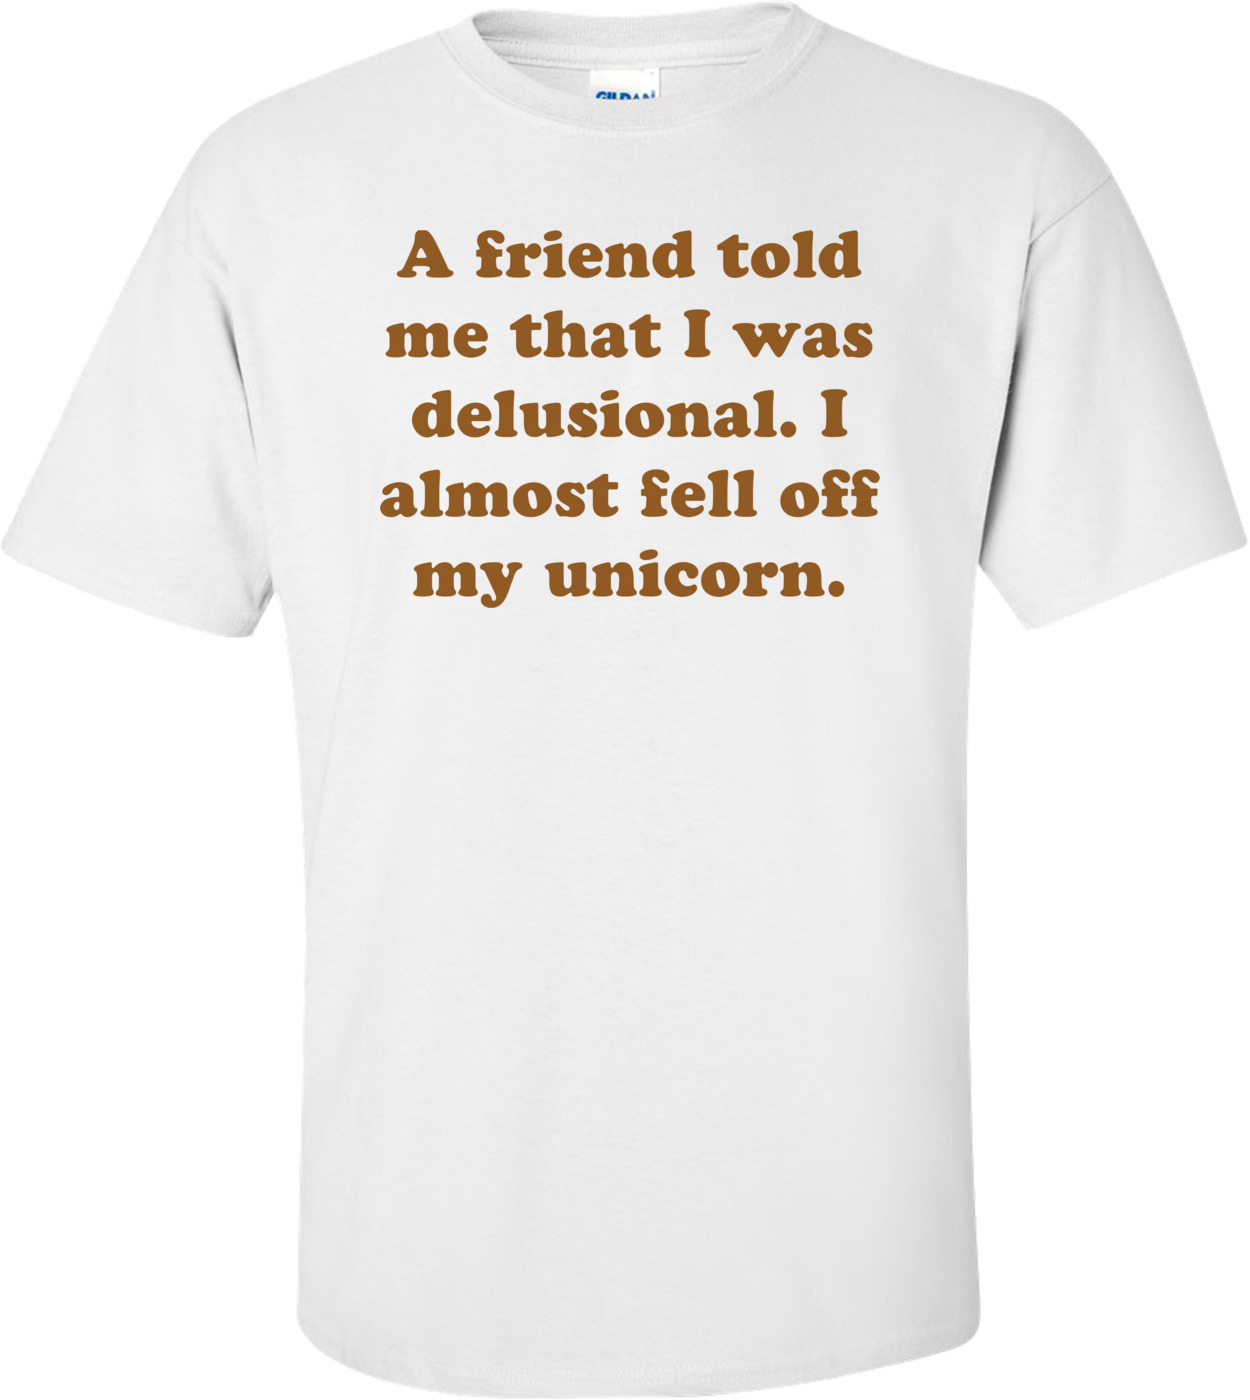 bf53d4a6a a-friend-told-me-that-i-was-delusional-i-almost-fell-off-my-unicorn -shirt-3p.jpg